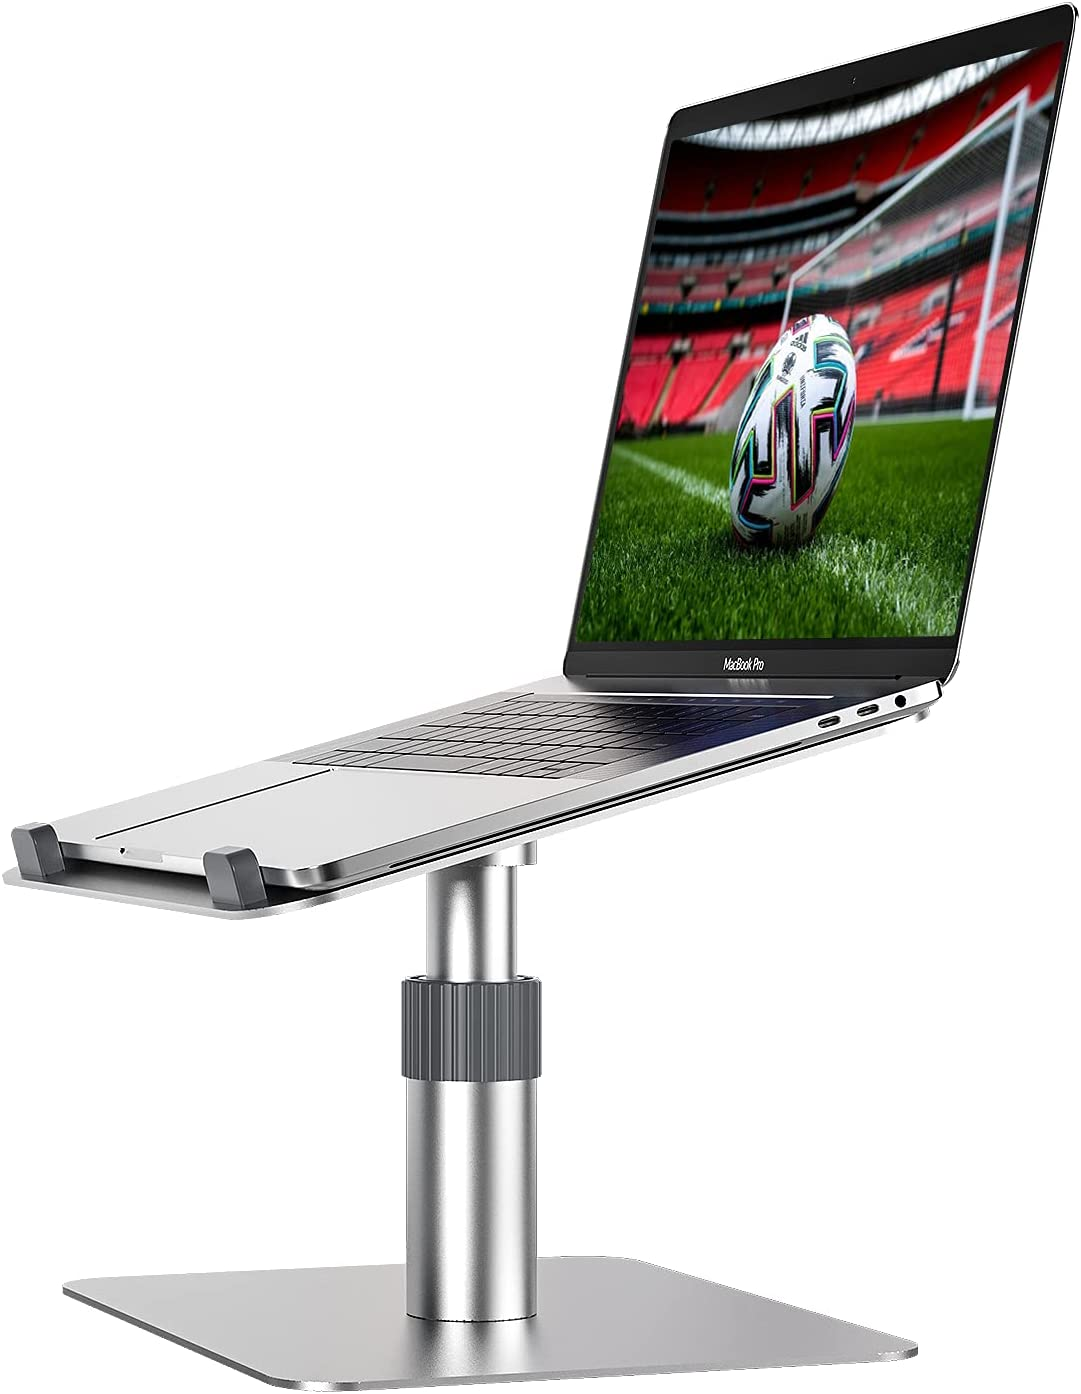 Newaner Laptop Computer Stand - Monitor Riser with Vented Metal and Desk Storage - 12.2x7.88x3.15 Inch Home Office Desk for Computer, Laptop, Printer, Monitor